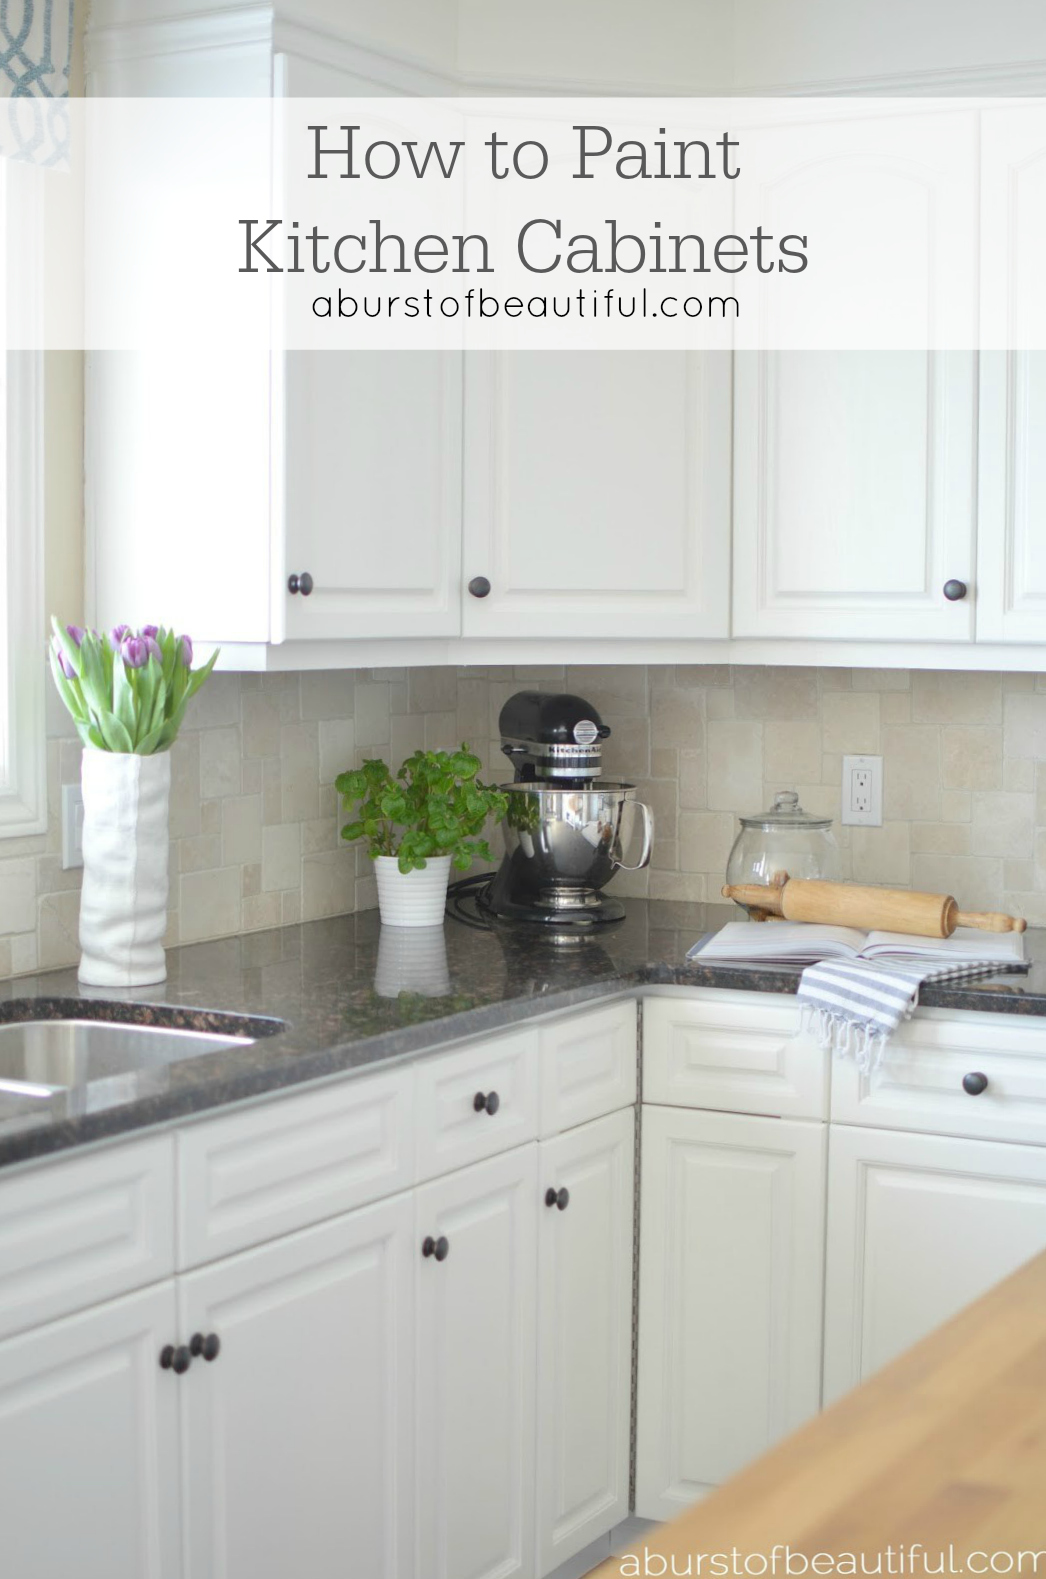 How to paint kitchen cabinets a burst of beautiful for Kitchen cabinets you can paint